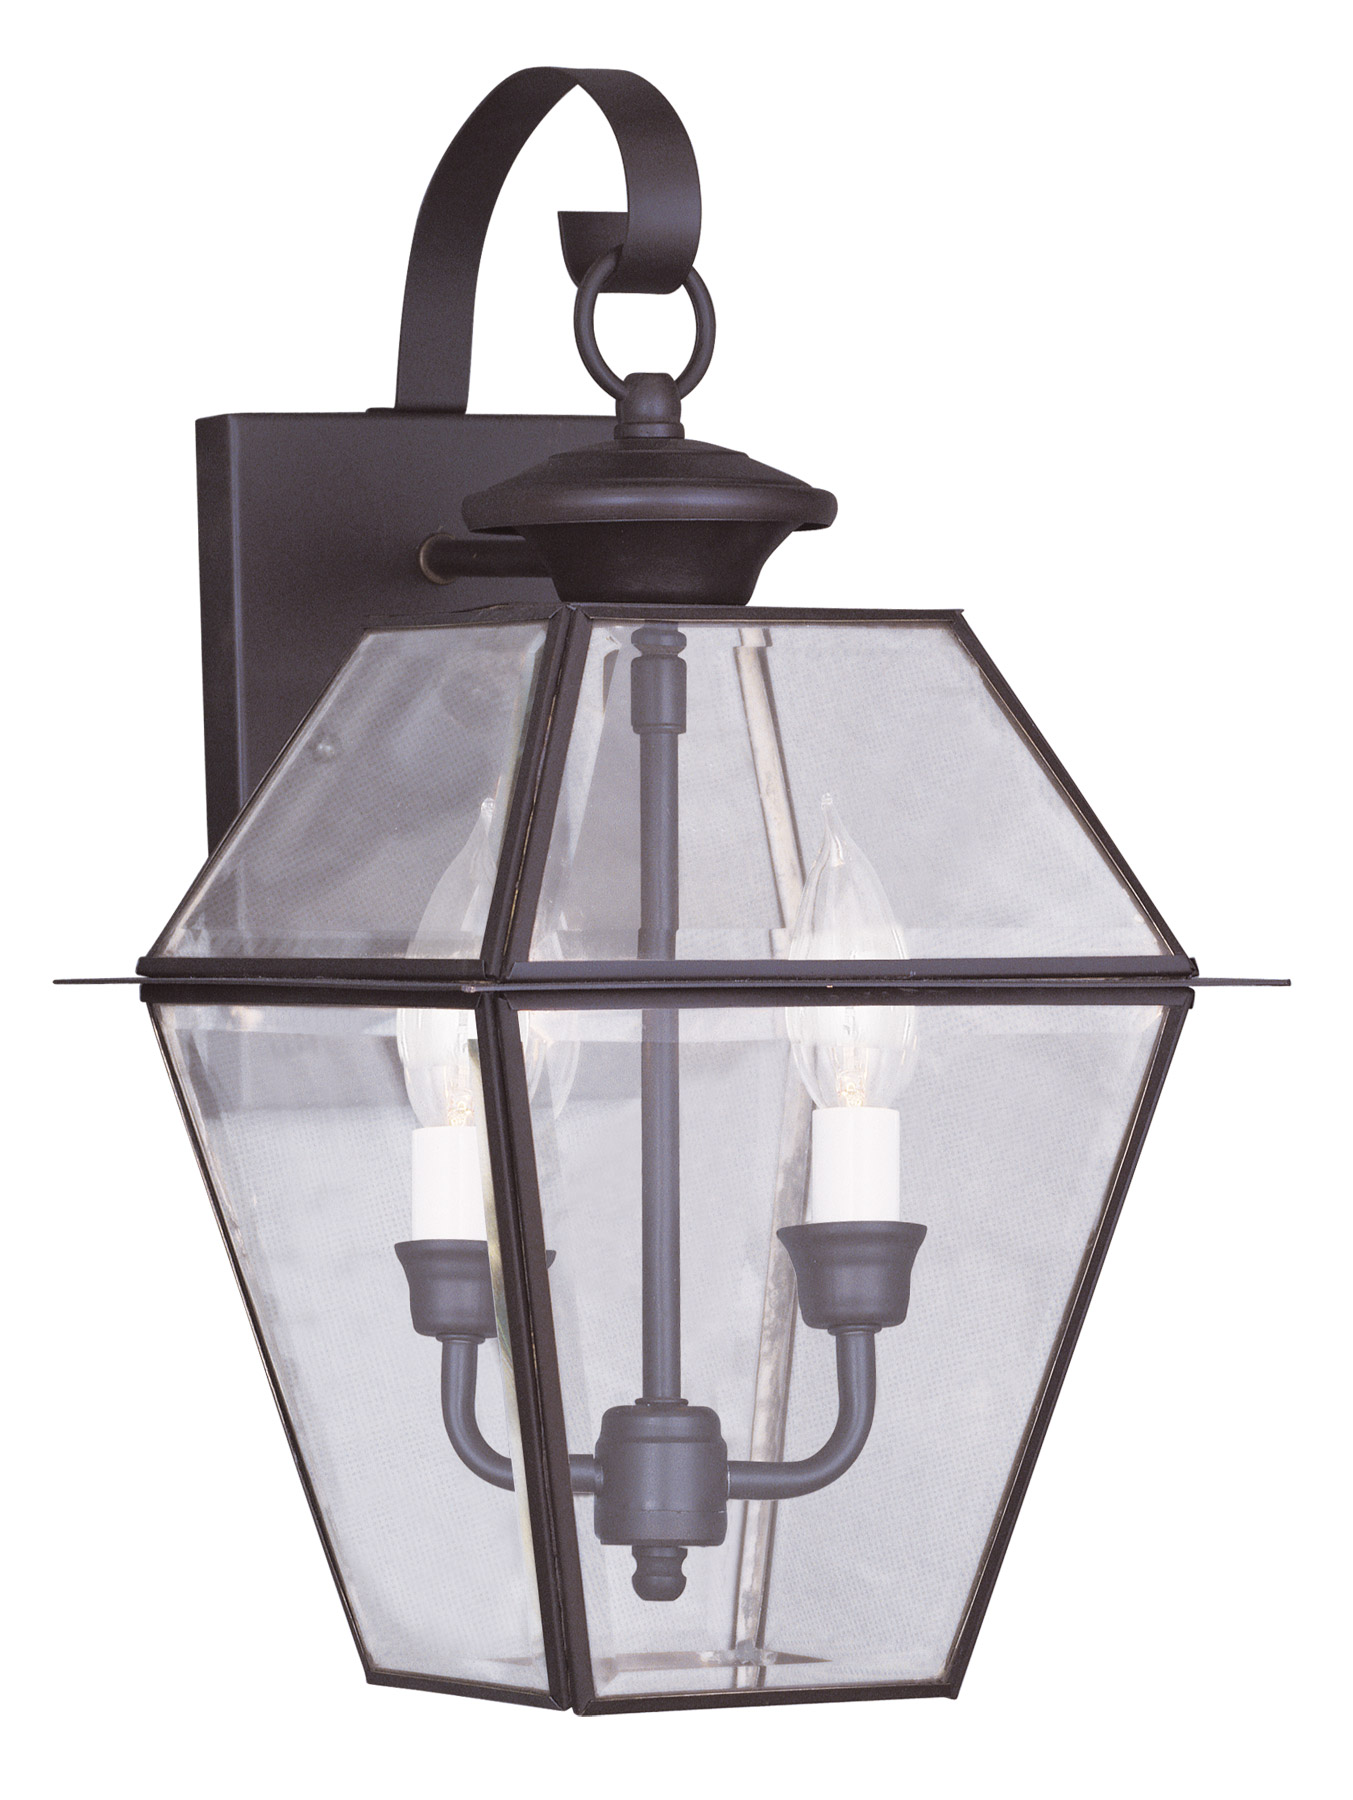 verde lighting living outdoor mission lamp b montclair src posts com livex light patina post prod sears